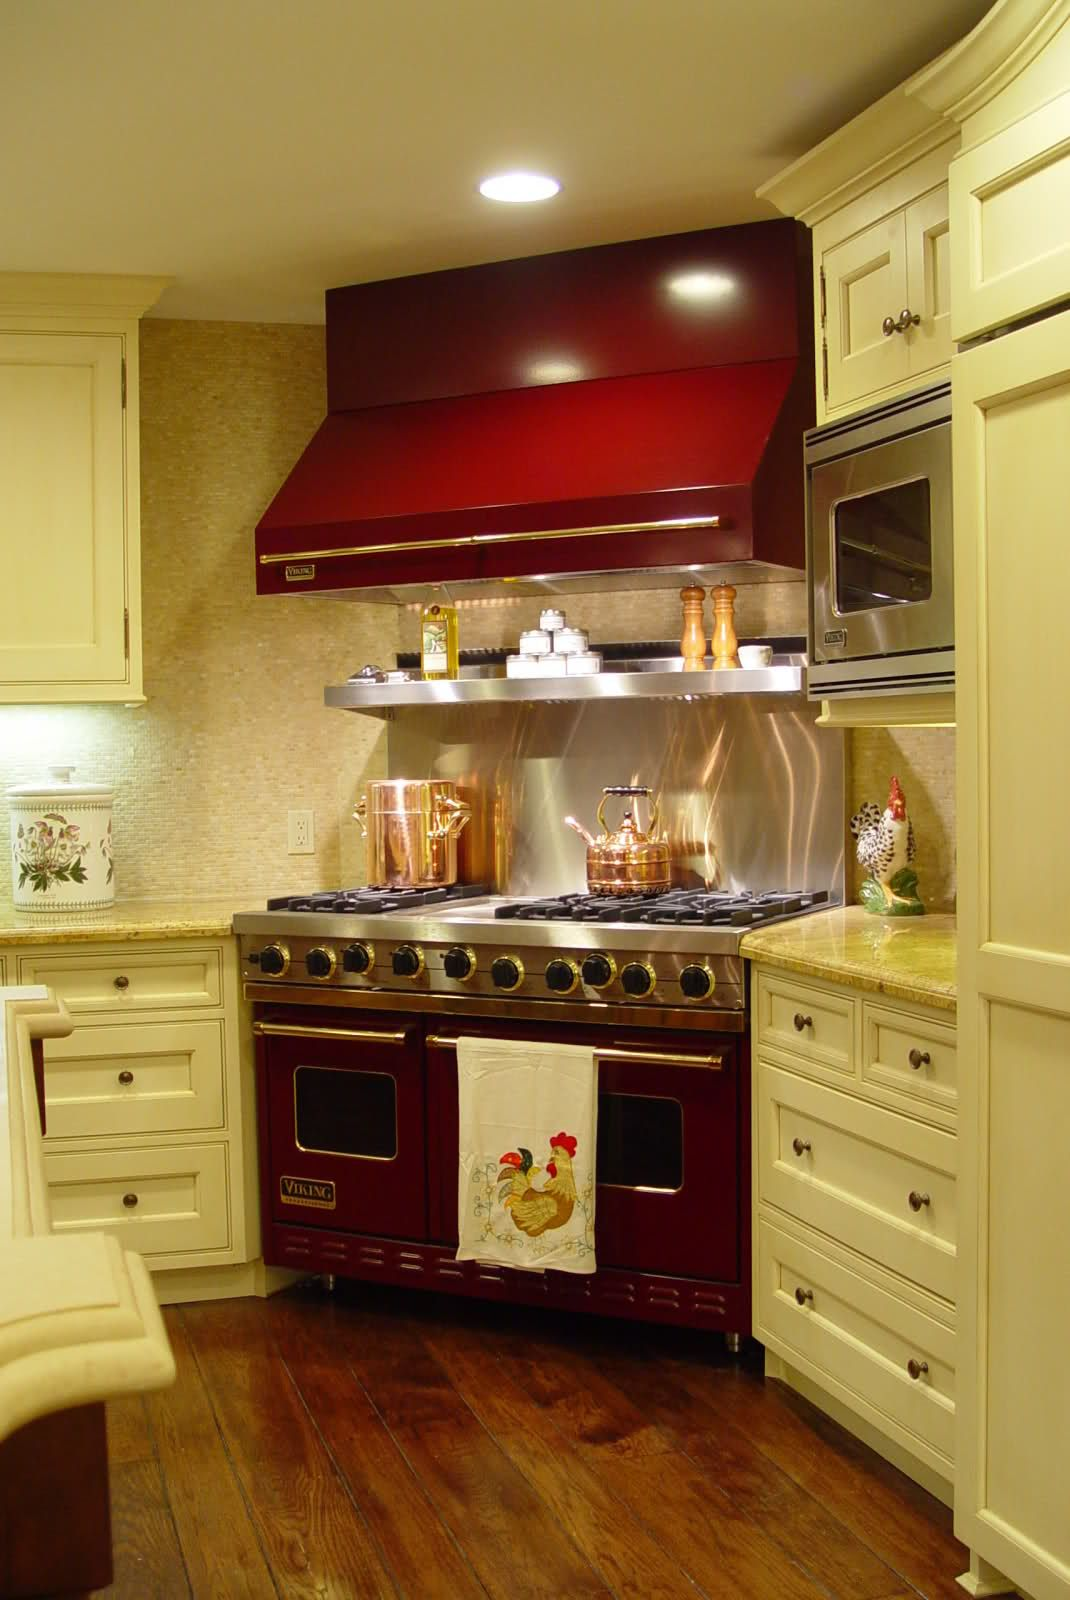 I love the white cabinets and the corner range